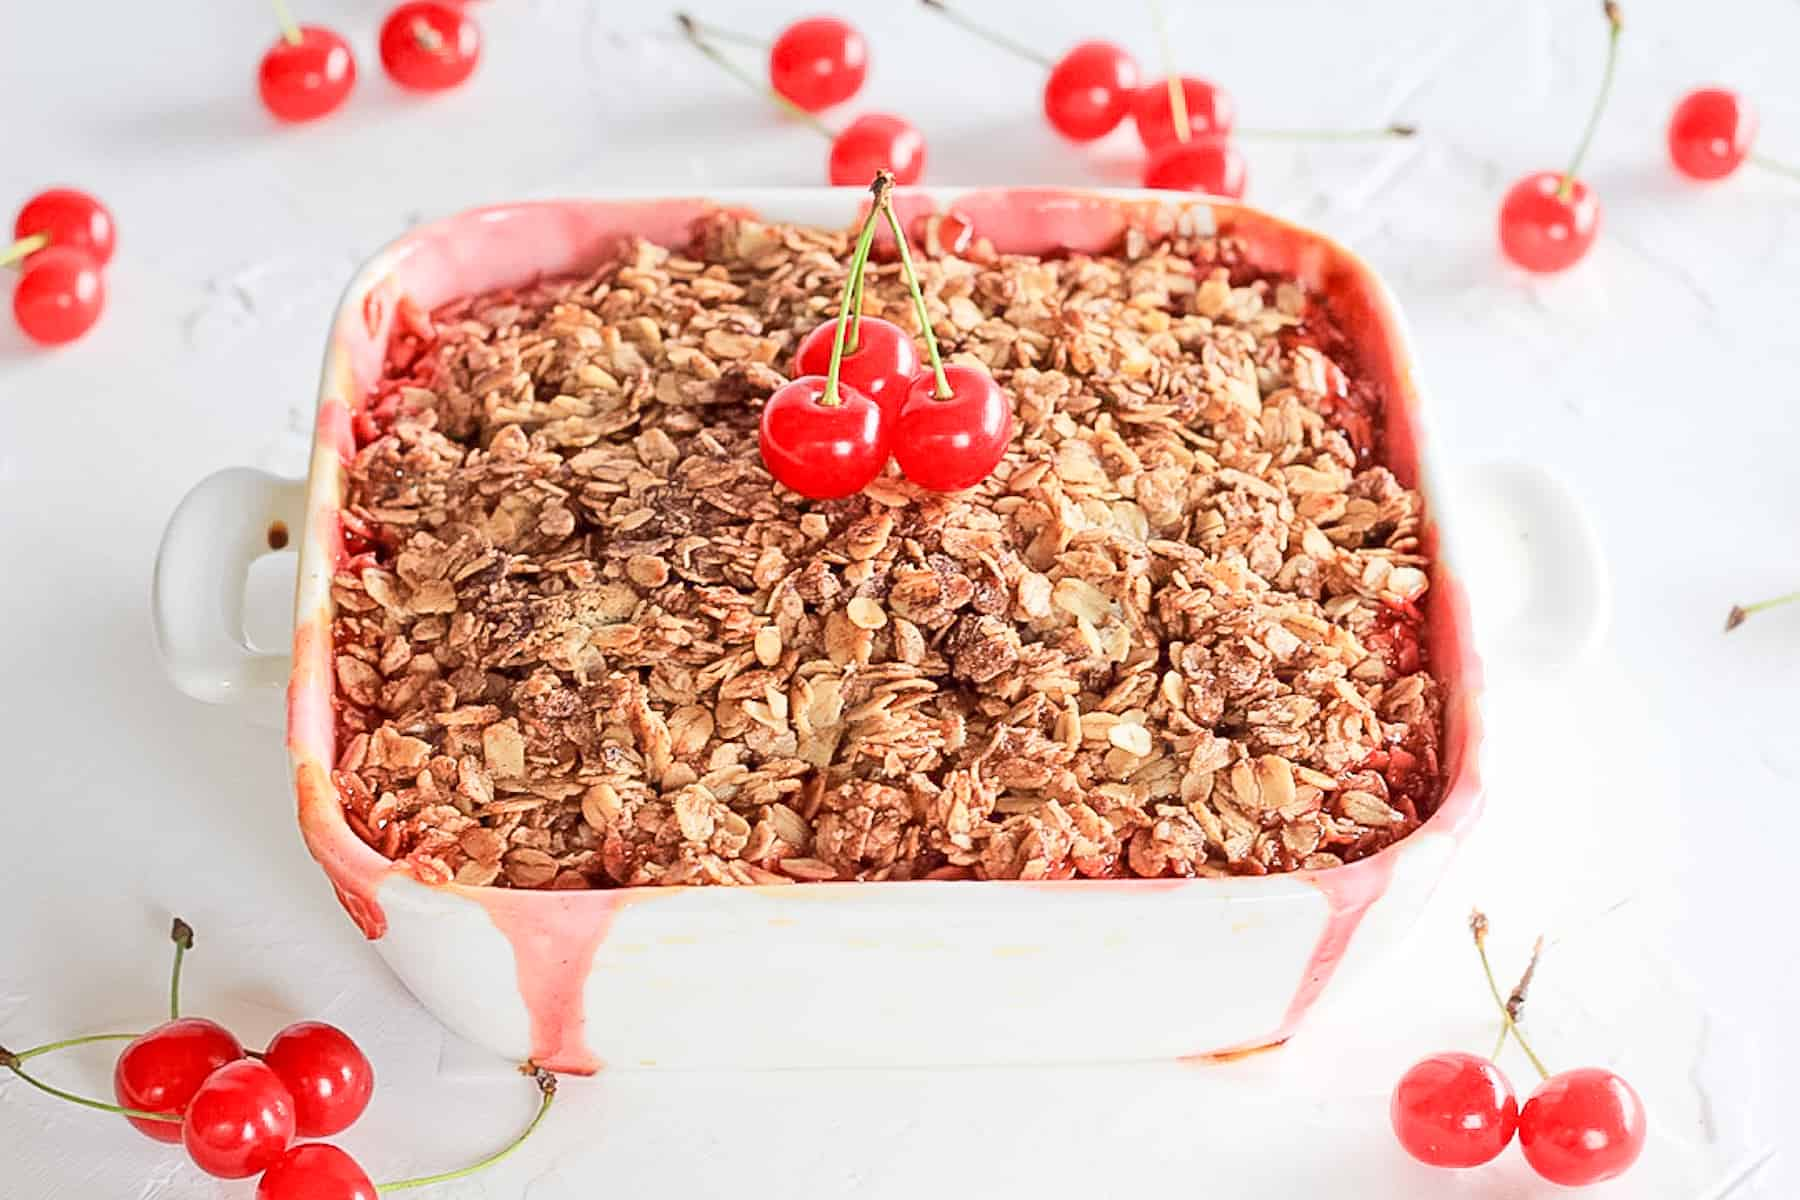 Baking dish with cherry crumble surrounded by fresh cherries.